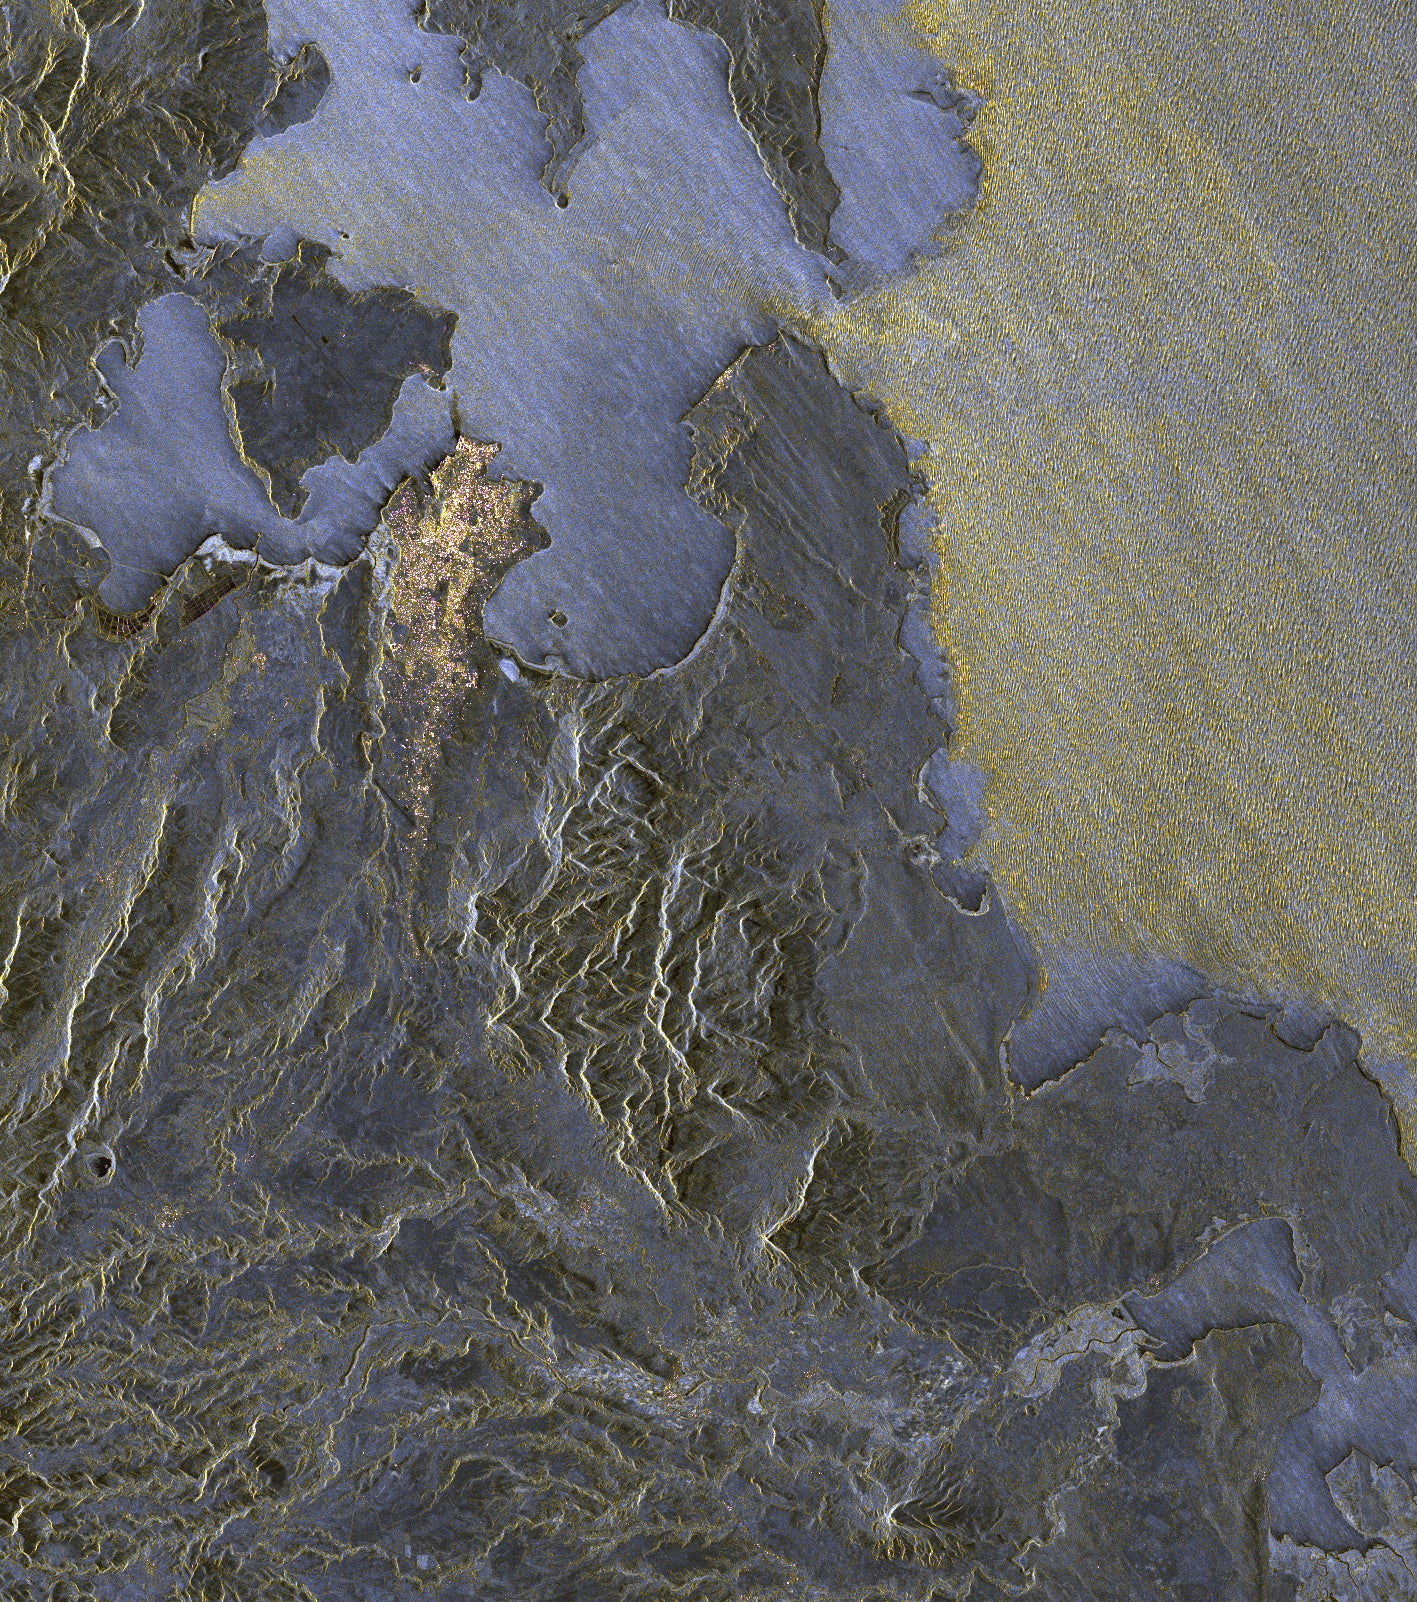 3-D Map-Making TanDEM-X Satellite Returns First Images, Showing Fine Detail of Earth's Surface